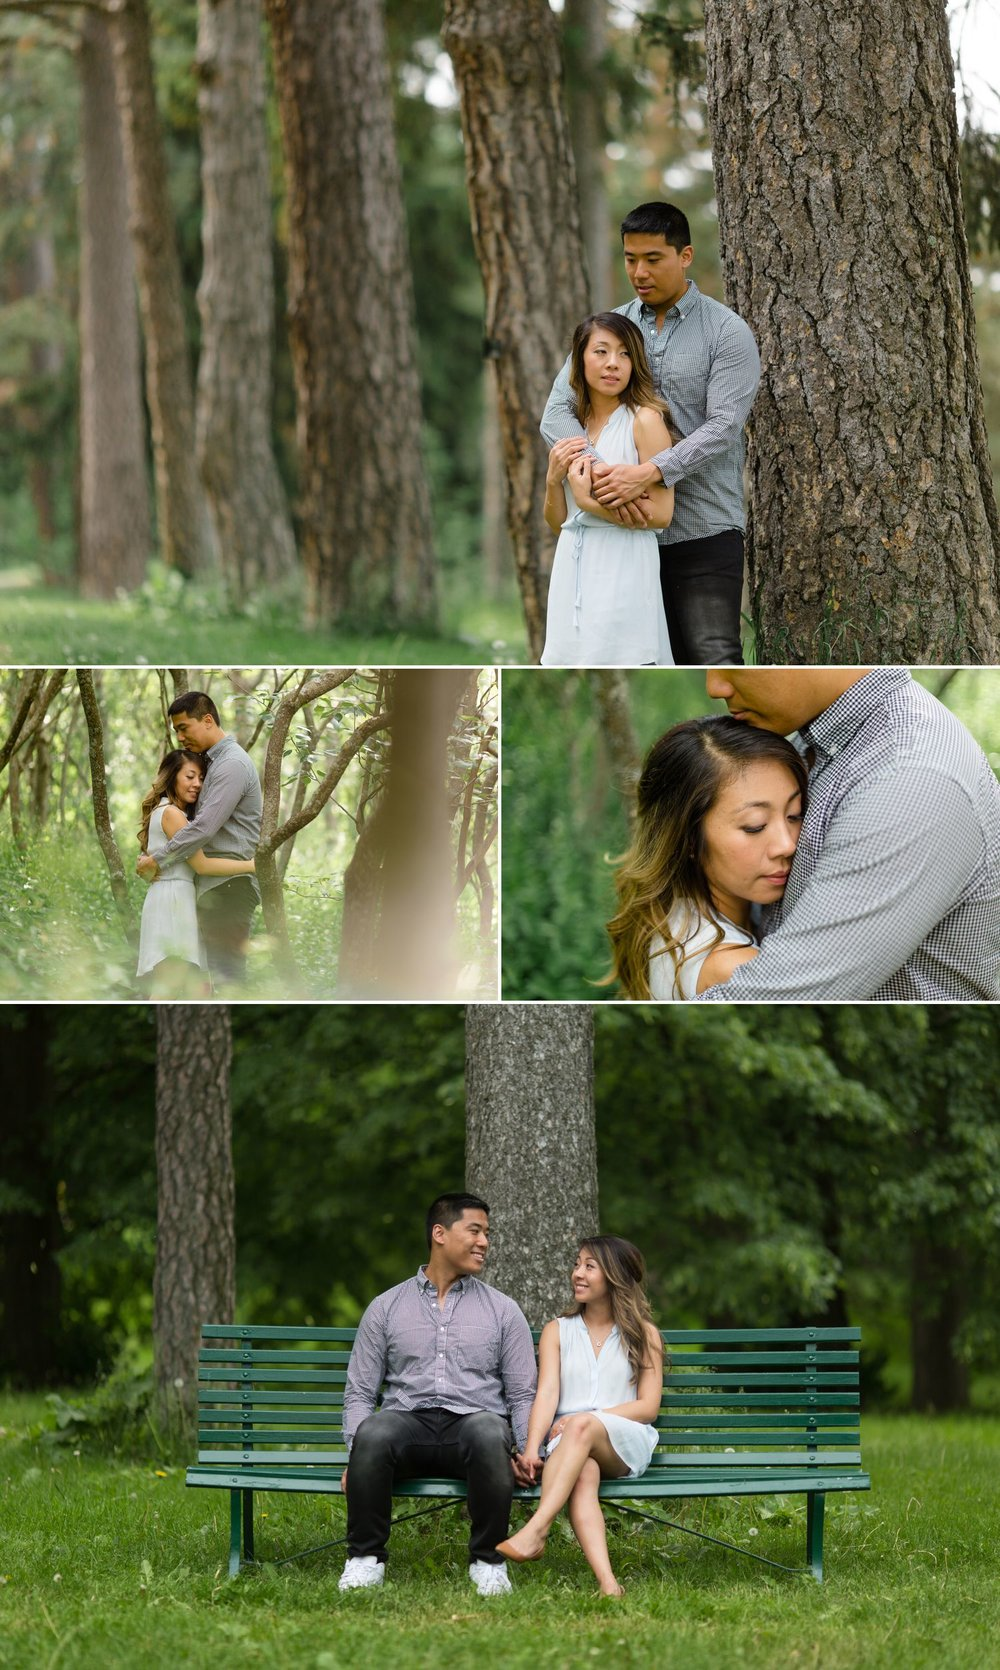 Engagement portraits taken at the Arboretum in Ottawa, ON